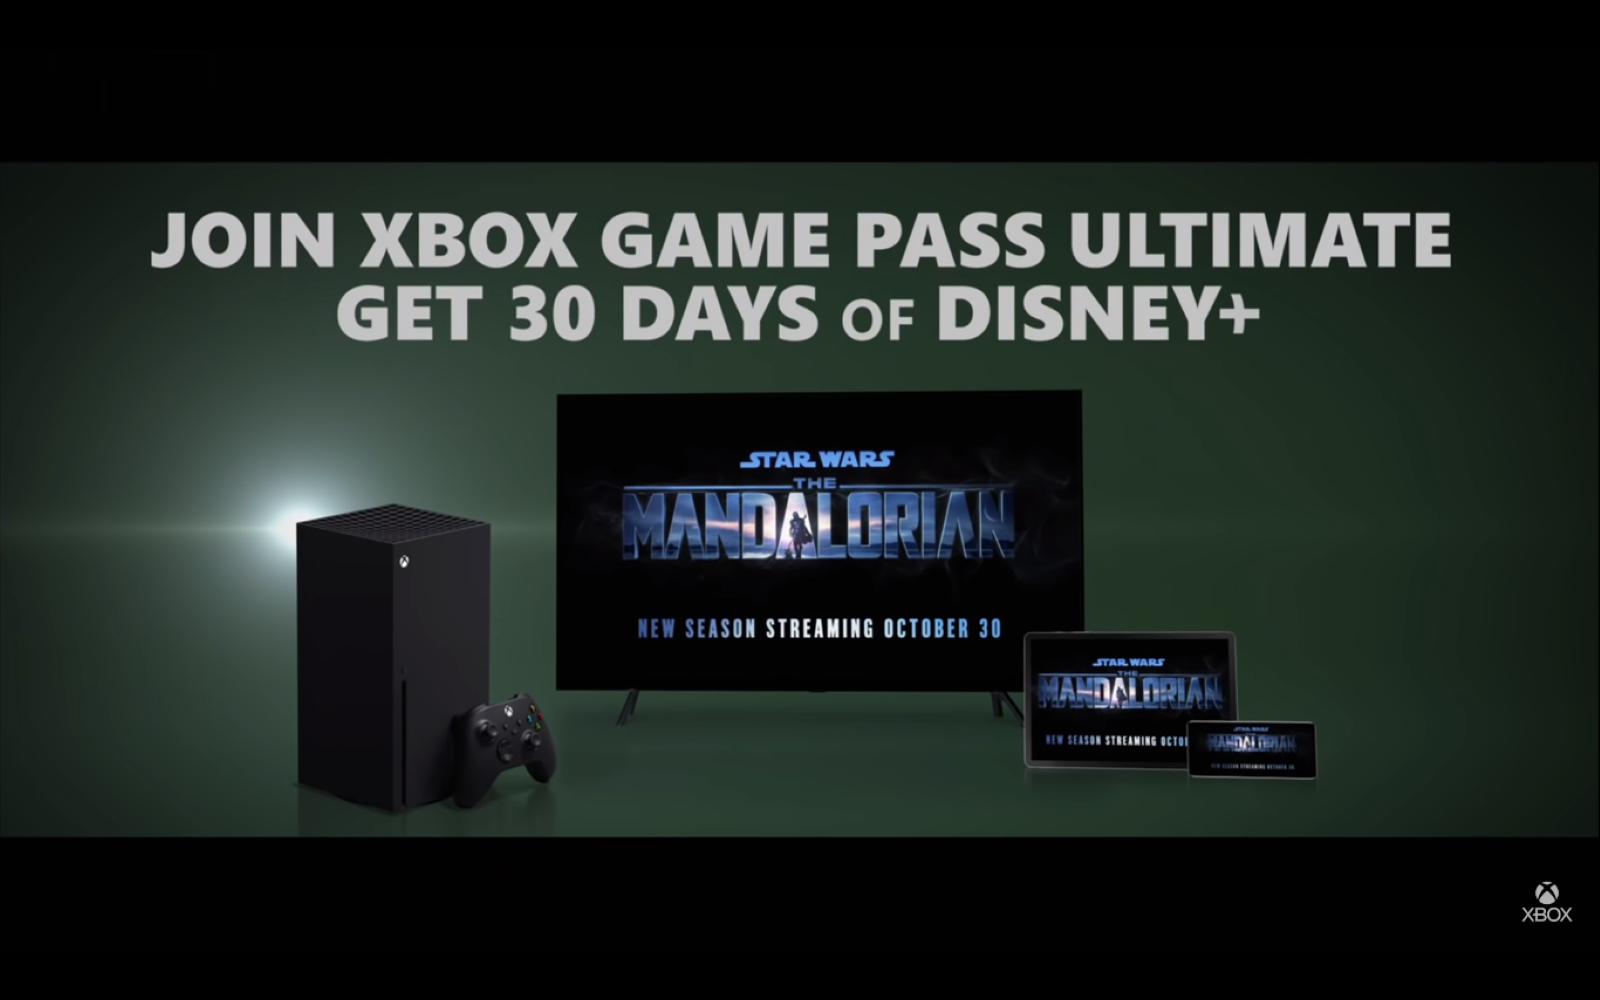 Get A Free Month Of Disney+ With Your Xbox Game Pass Ultimate Subscription